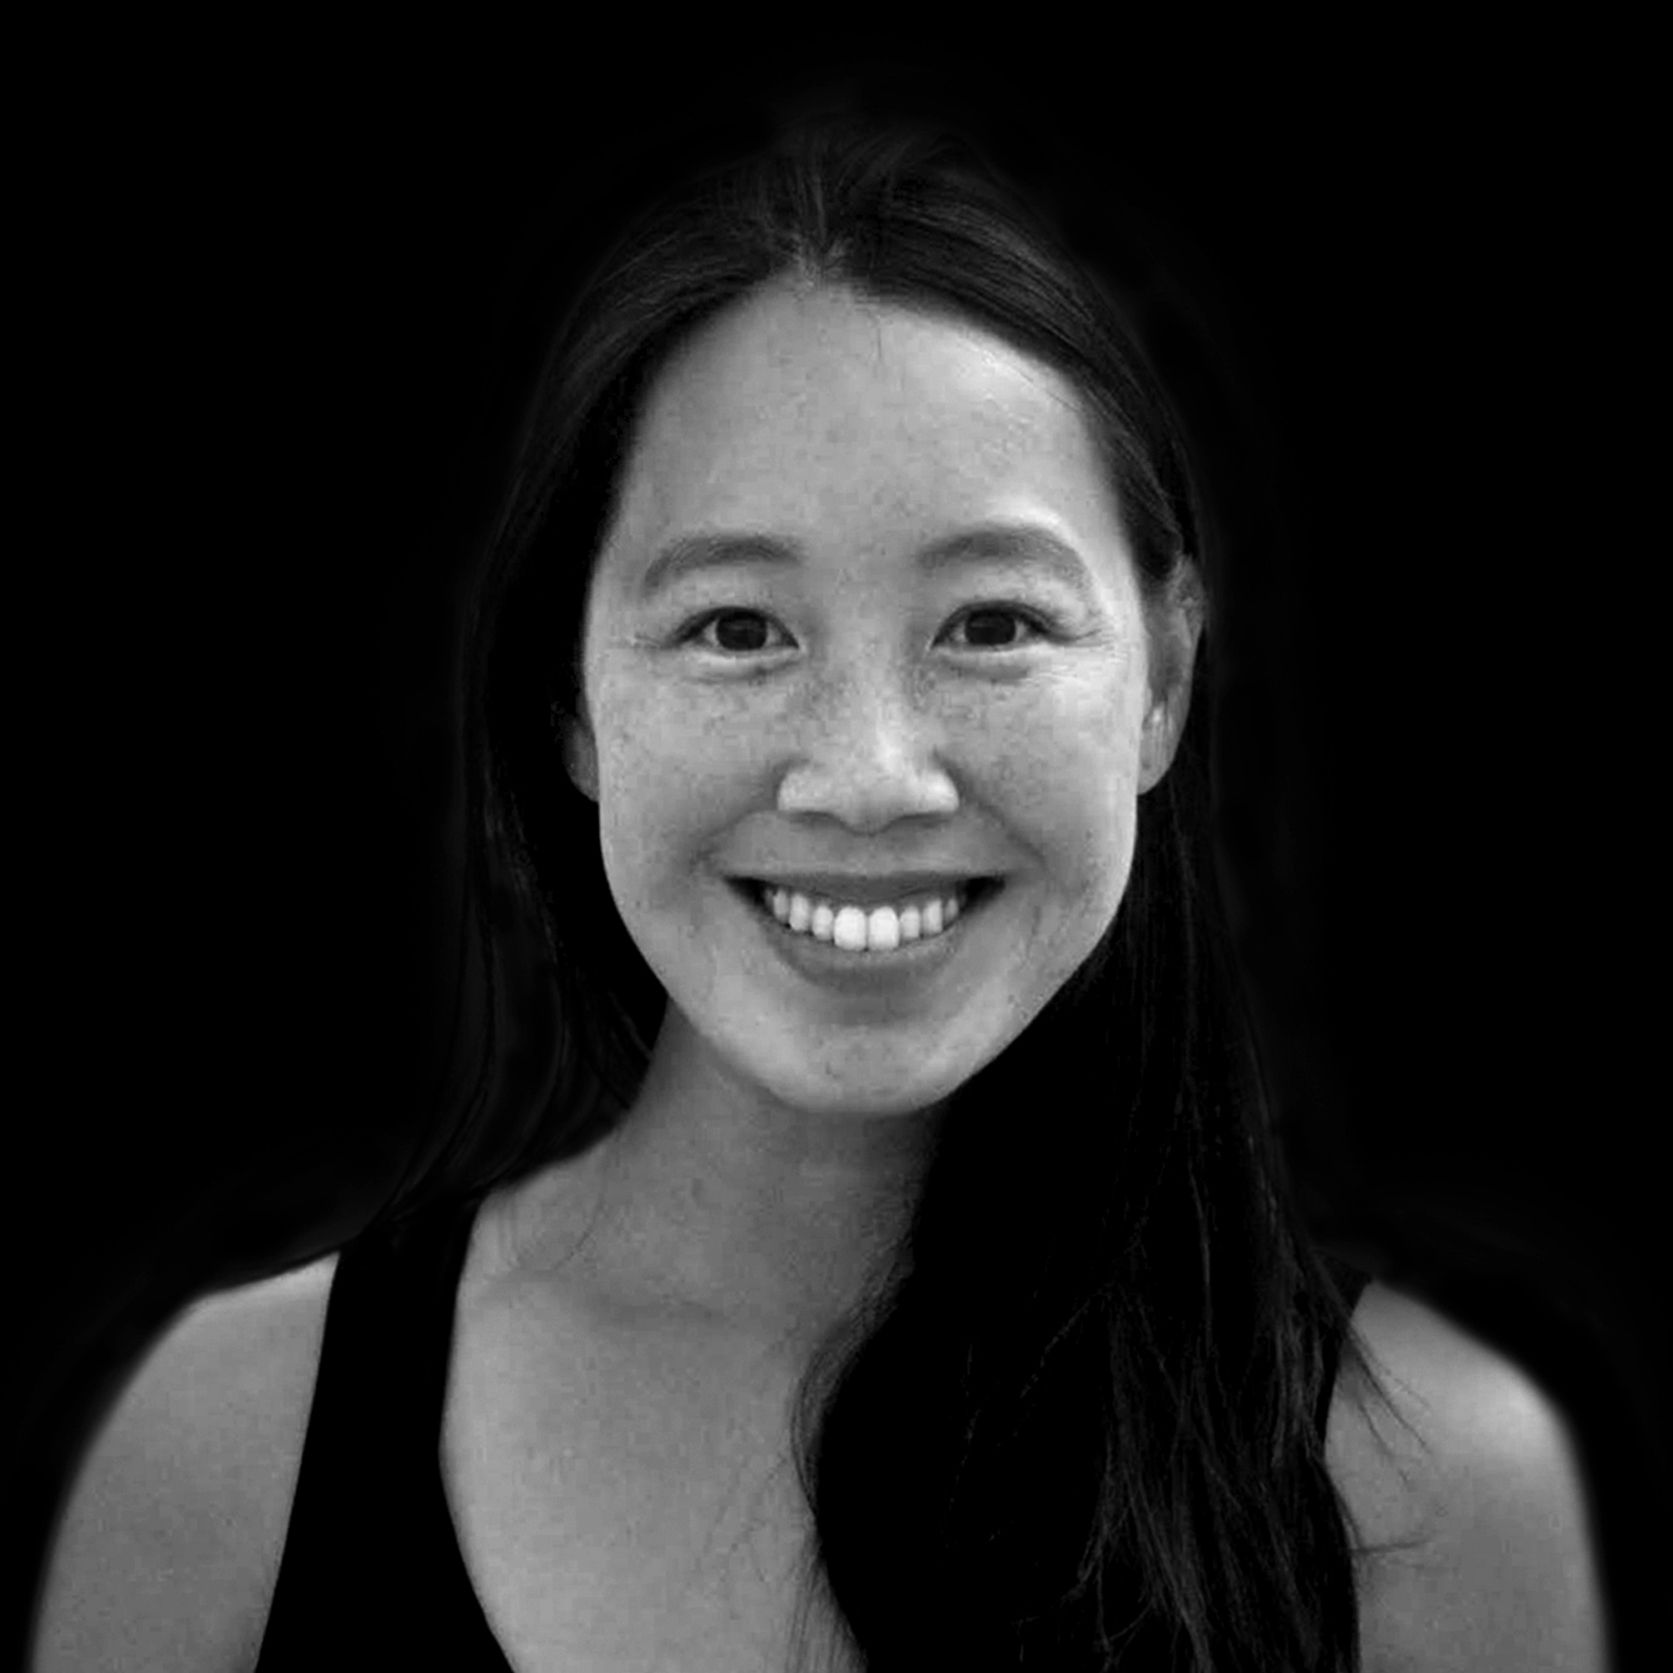 Joyce Chan Black and White Headshot